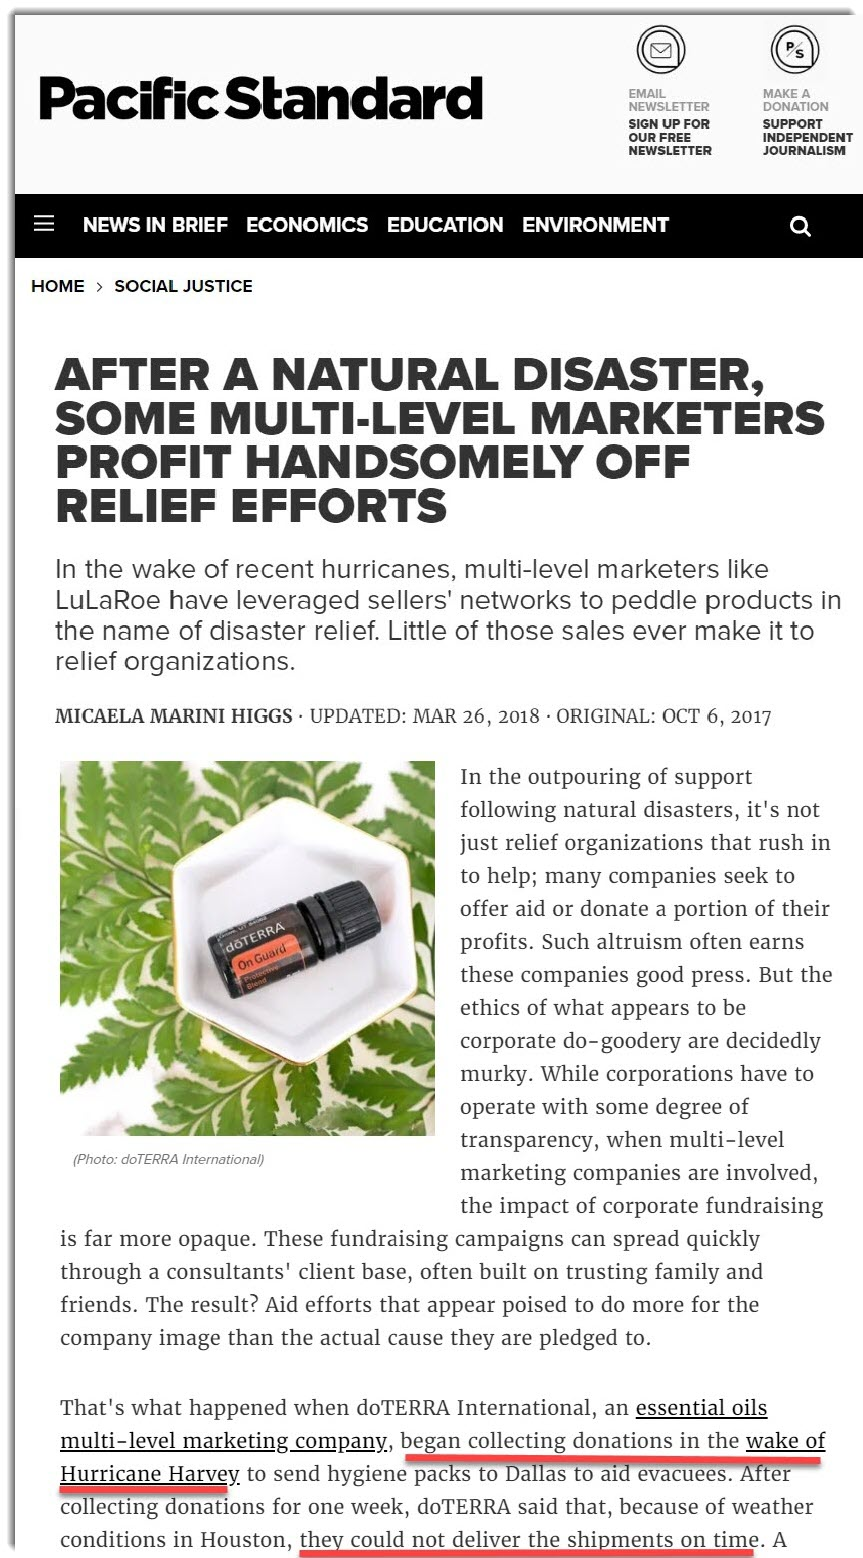 doterra stole charity money on the PAcific STandrd